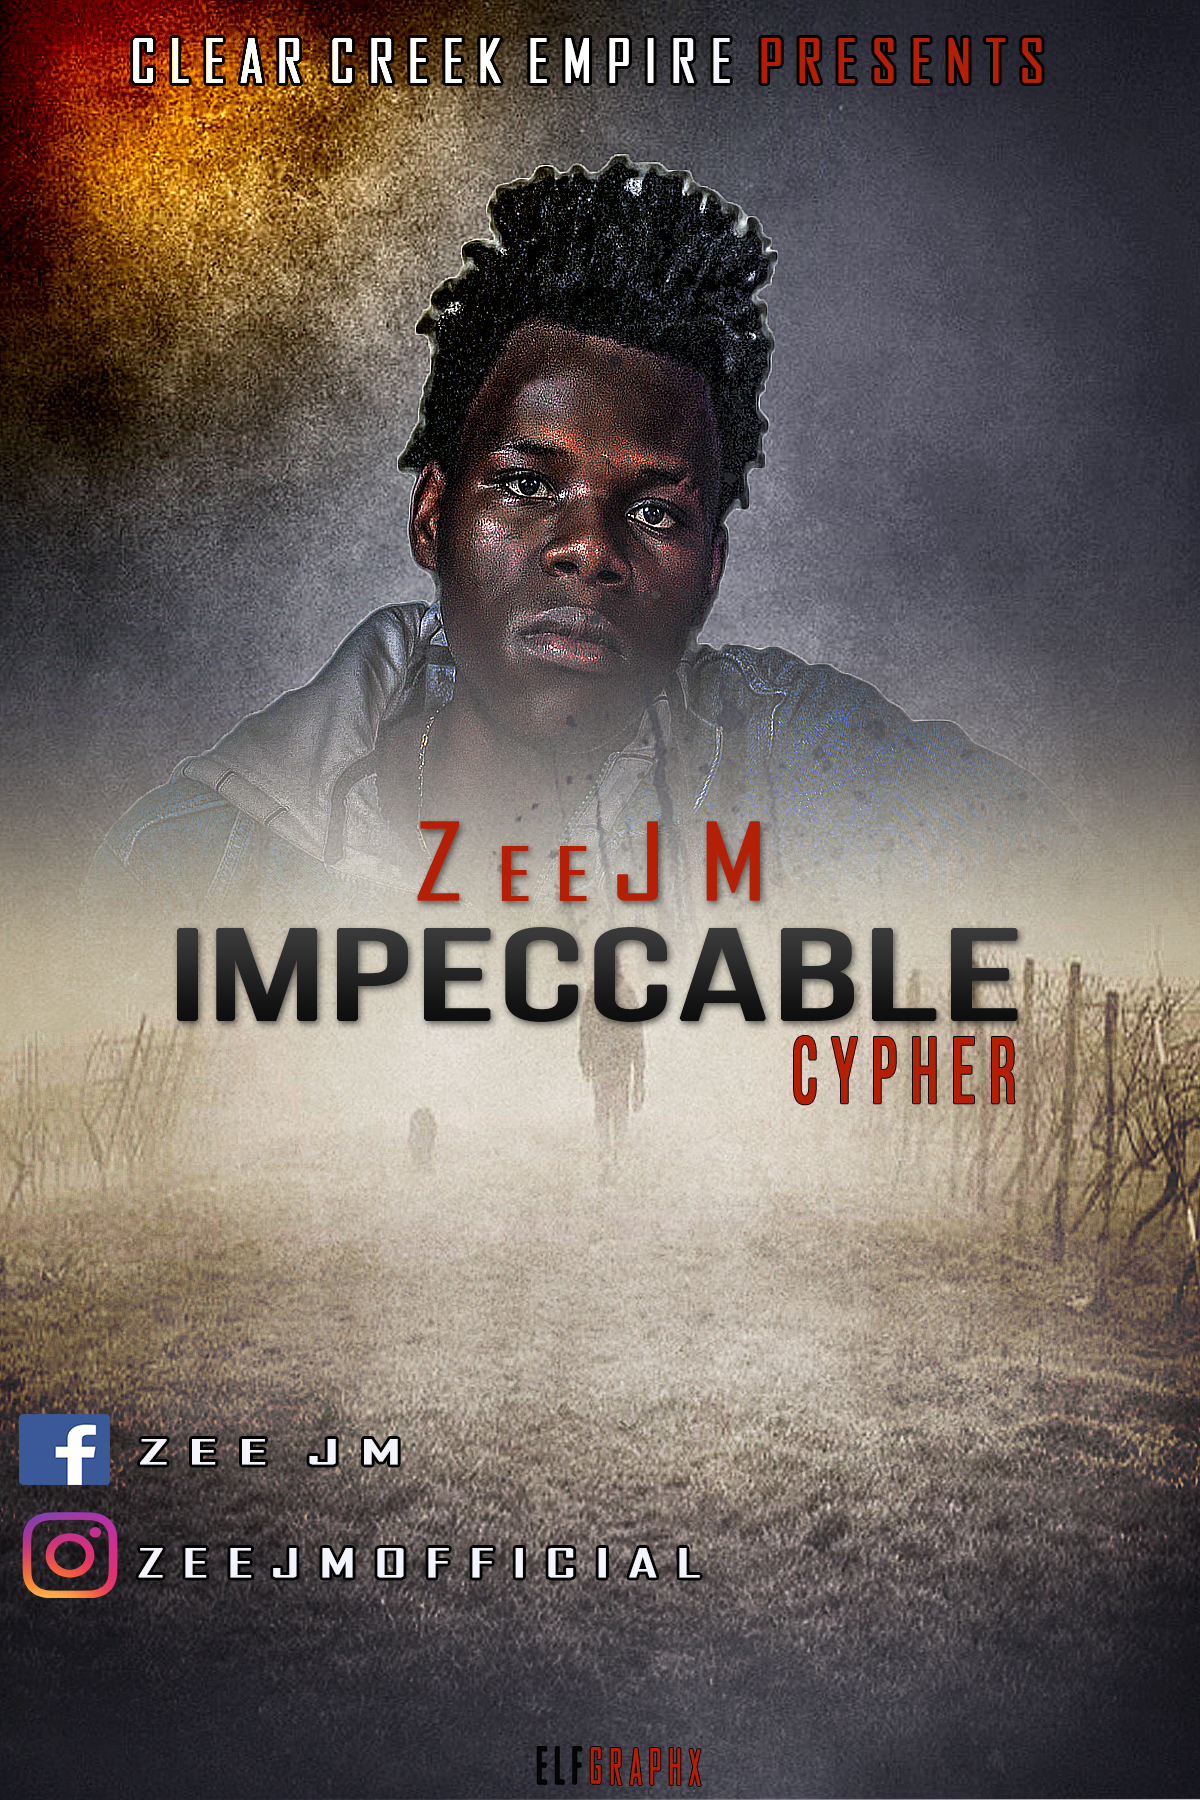 ZeeJM Mr Impecable Cypher Final COver Art.jpg